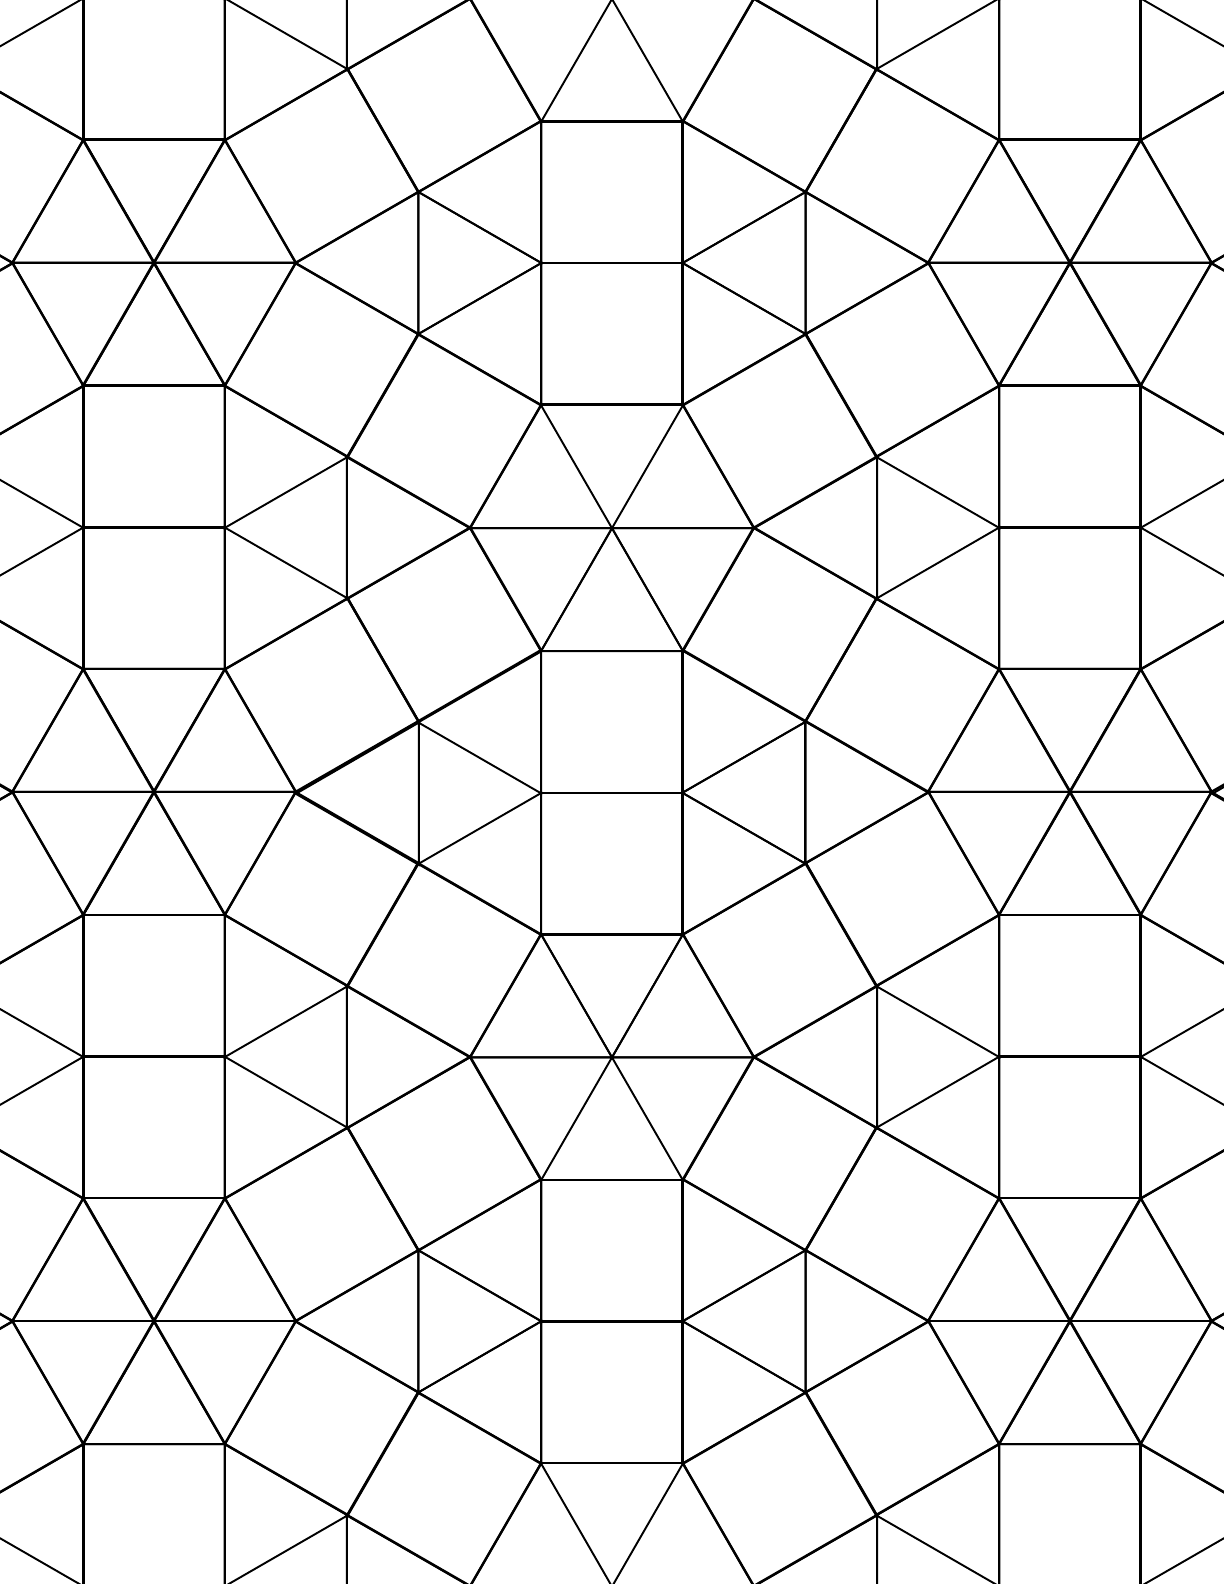 Tessellation graph paper 3 3 3 3 3 3 3 3 4 3 4 free download for Tessellating shapes templates